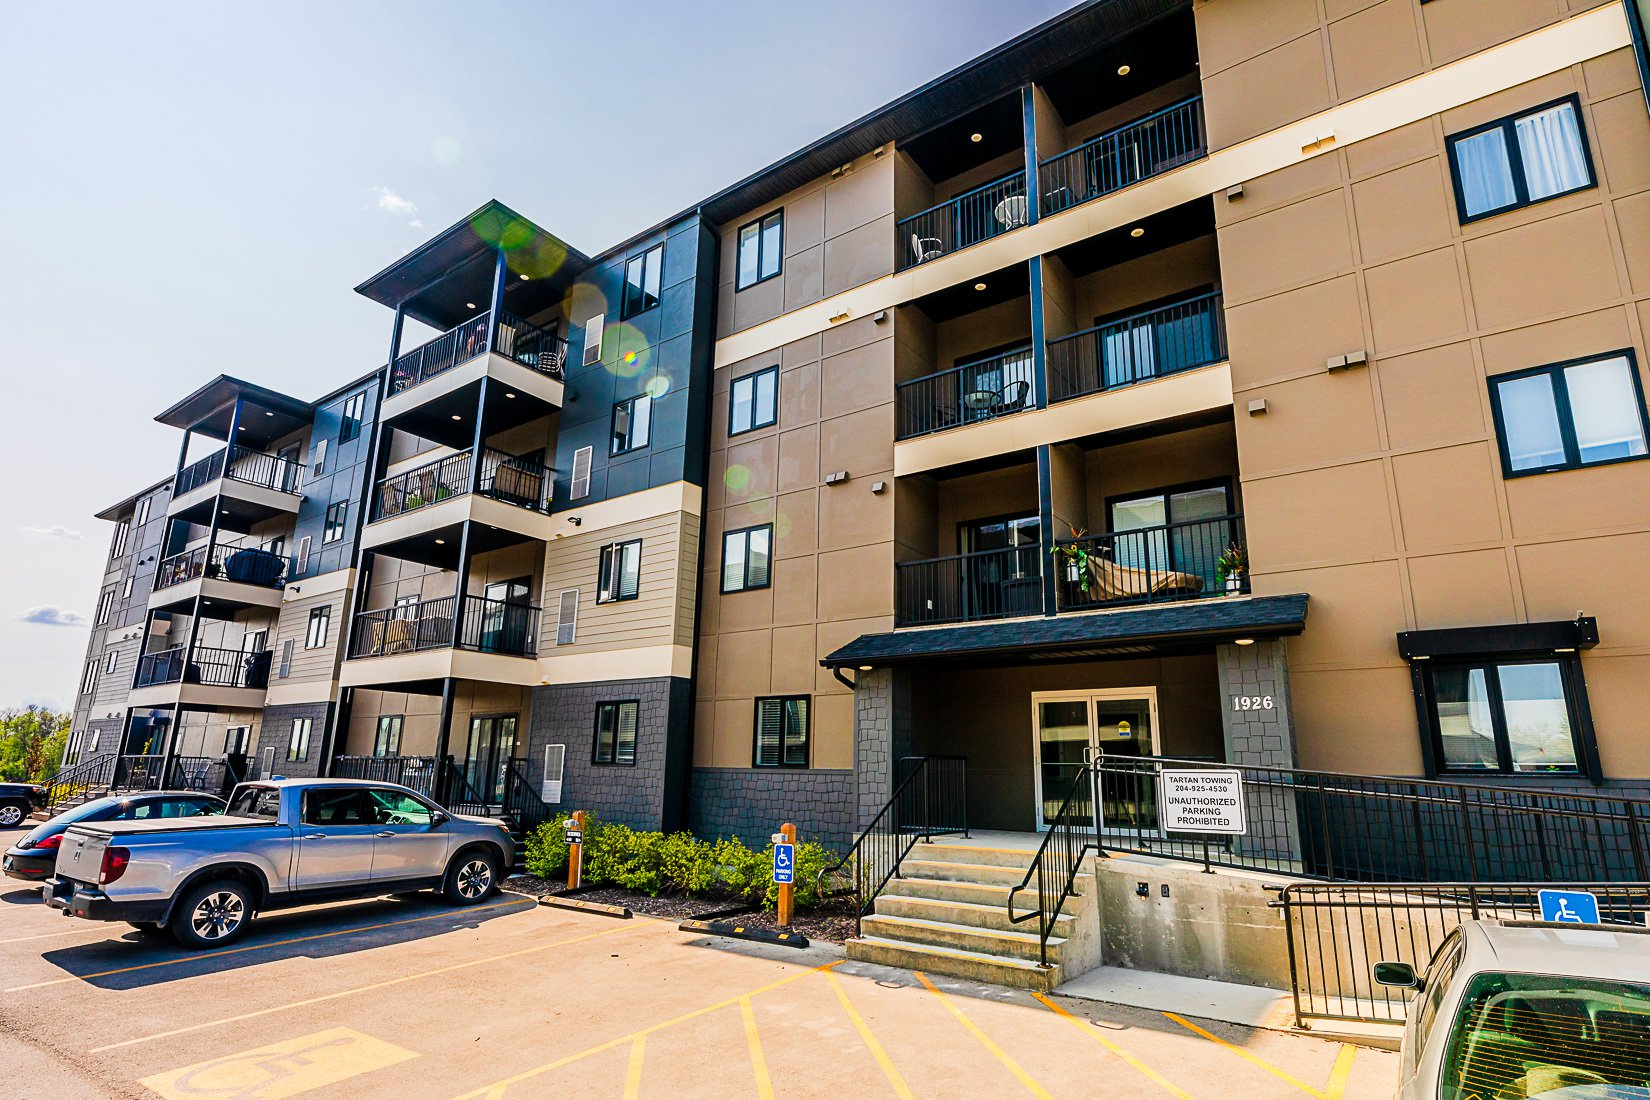 Main Photo: 210 1926 St. Mary's Road in Winnipeg: River Park South Condominium for rent (St. Vital)